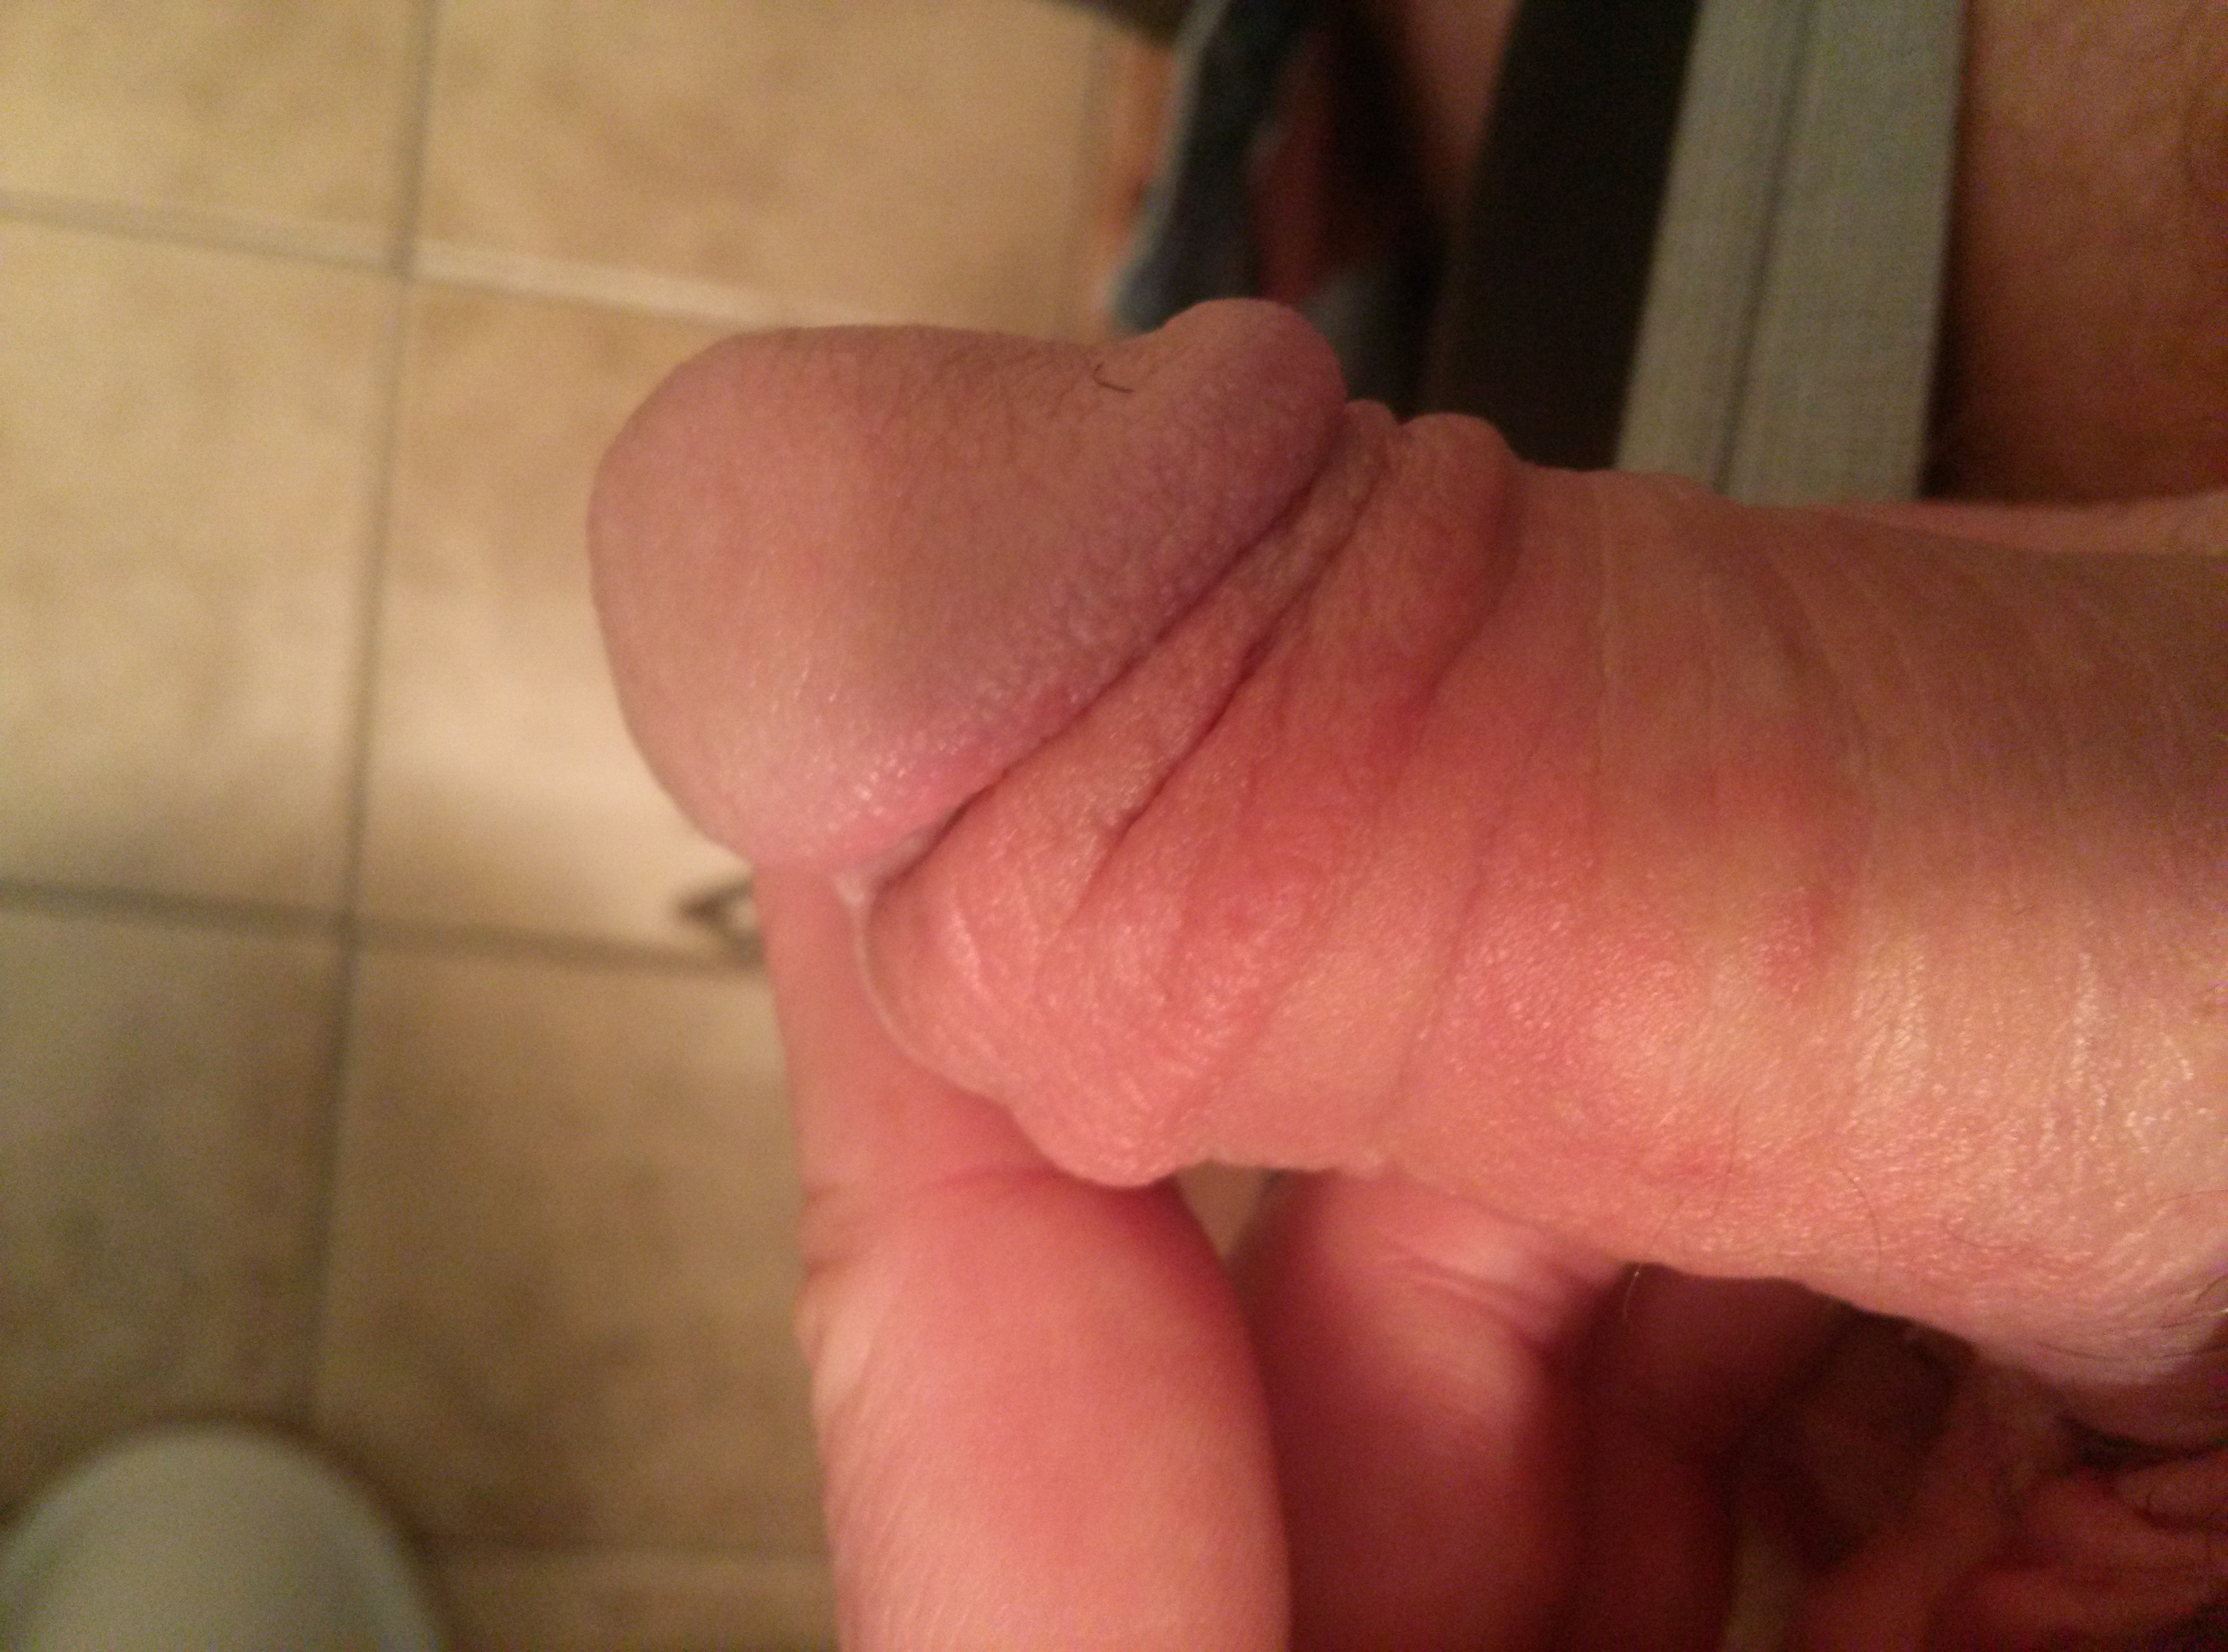 Mosquito bite on penis or cock